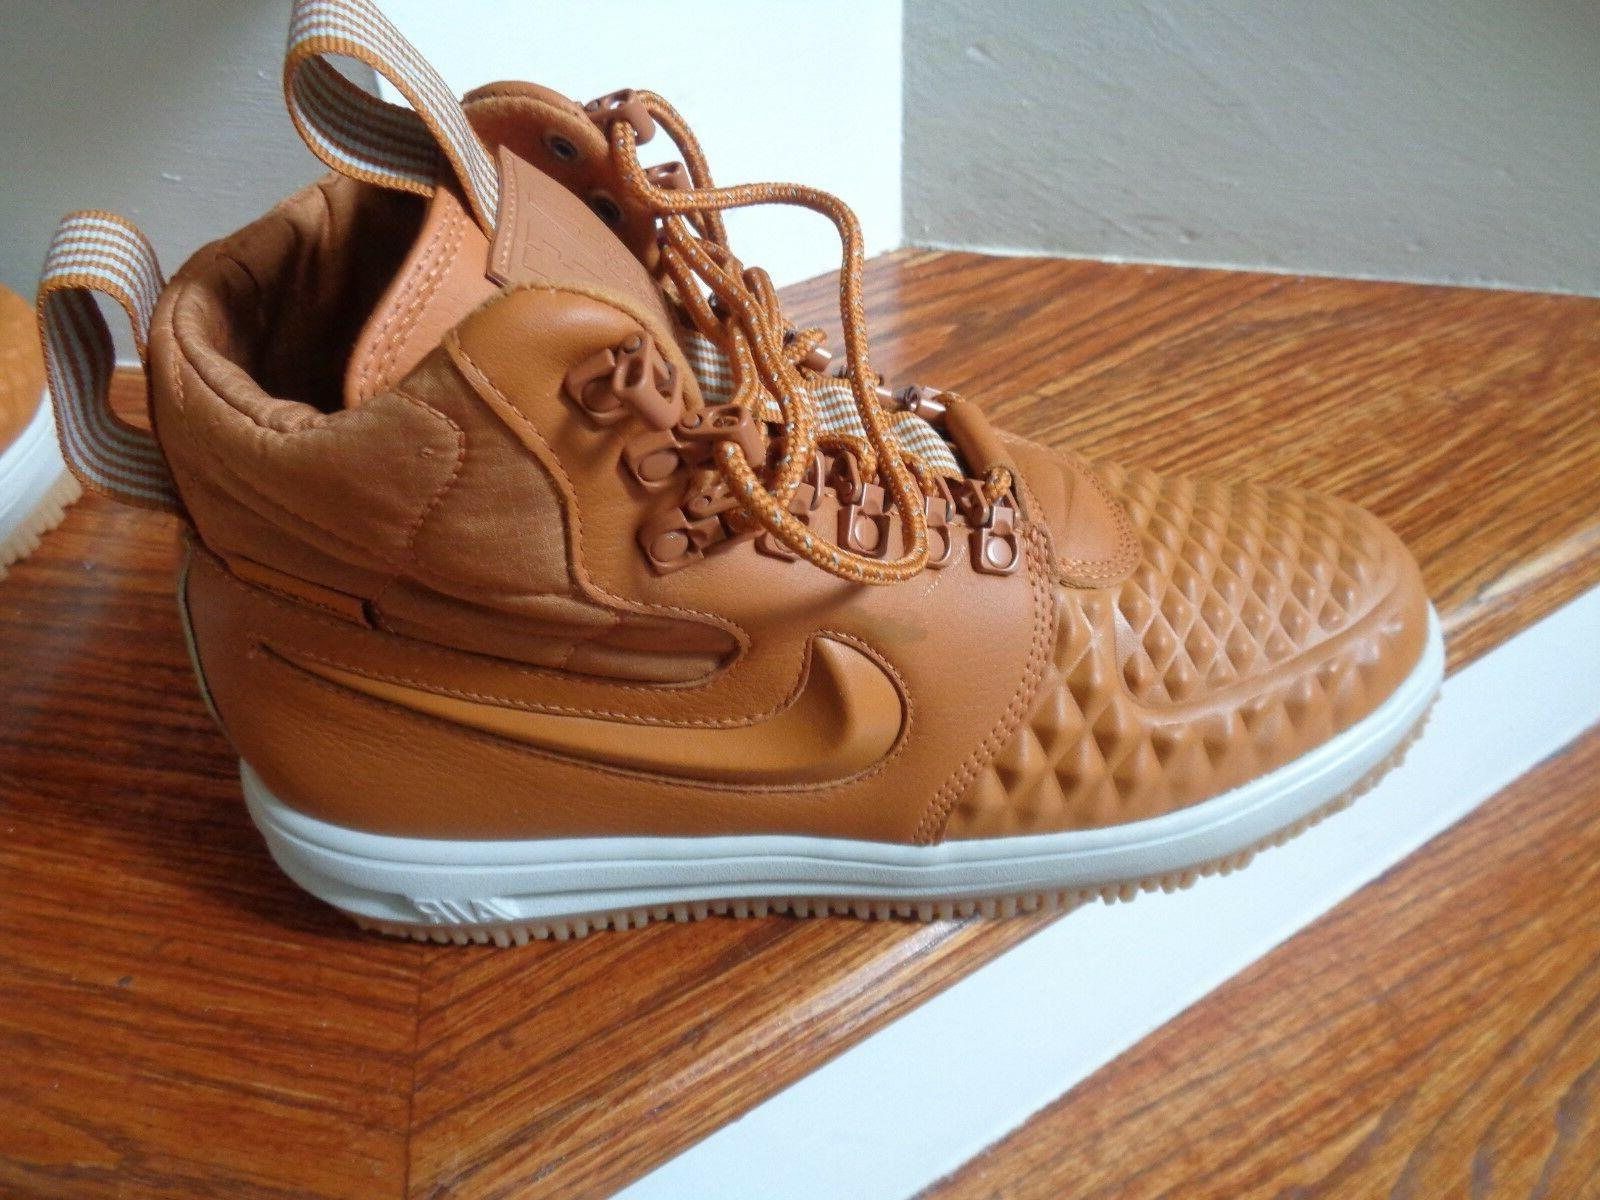 lunar force 1 waterproof duckboot women s